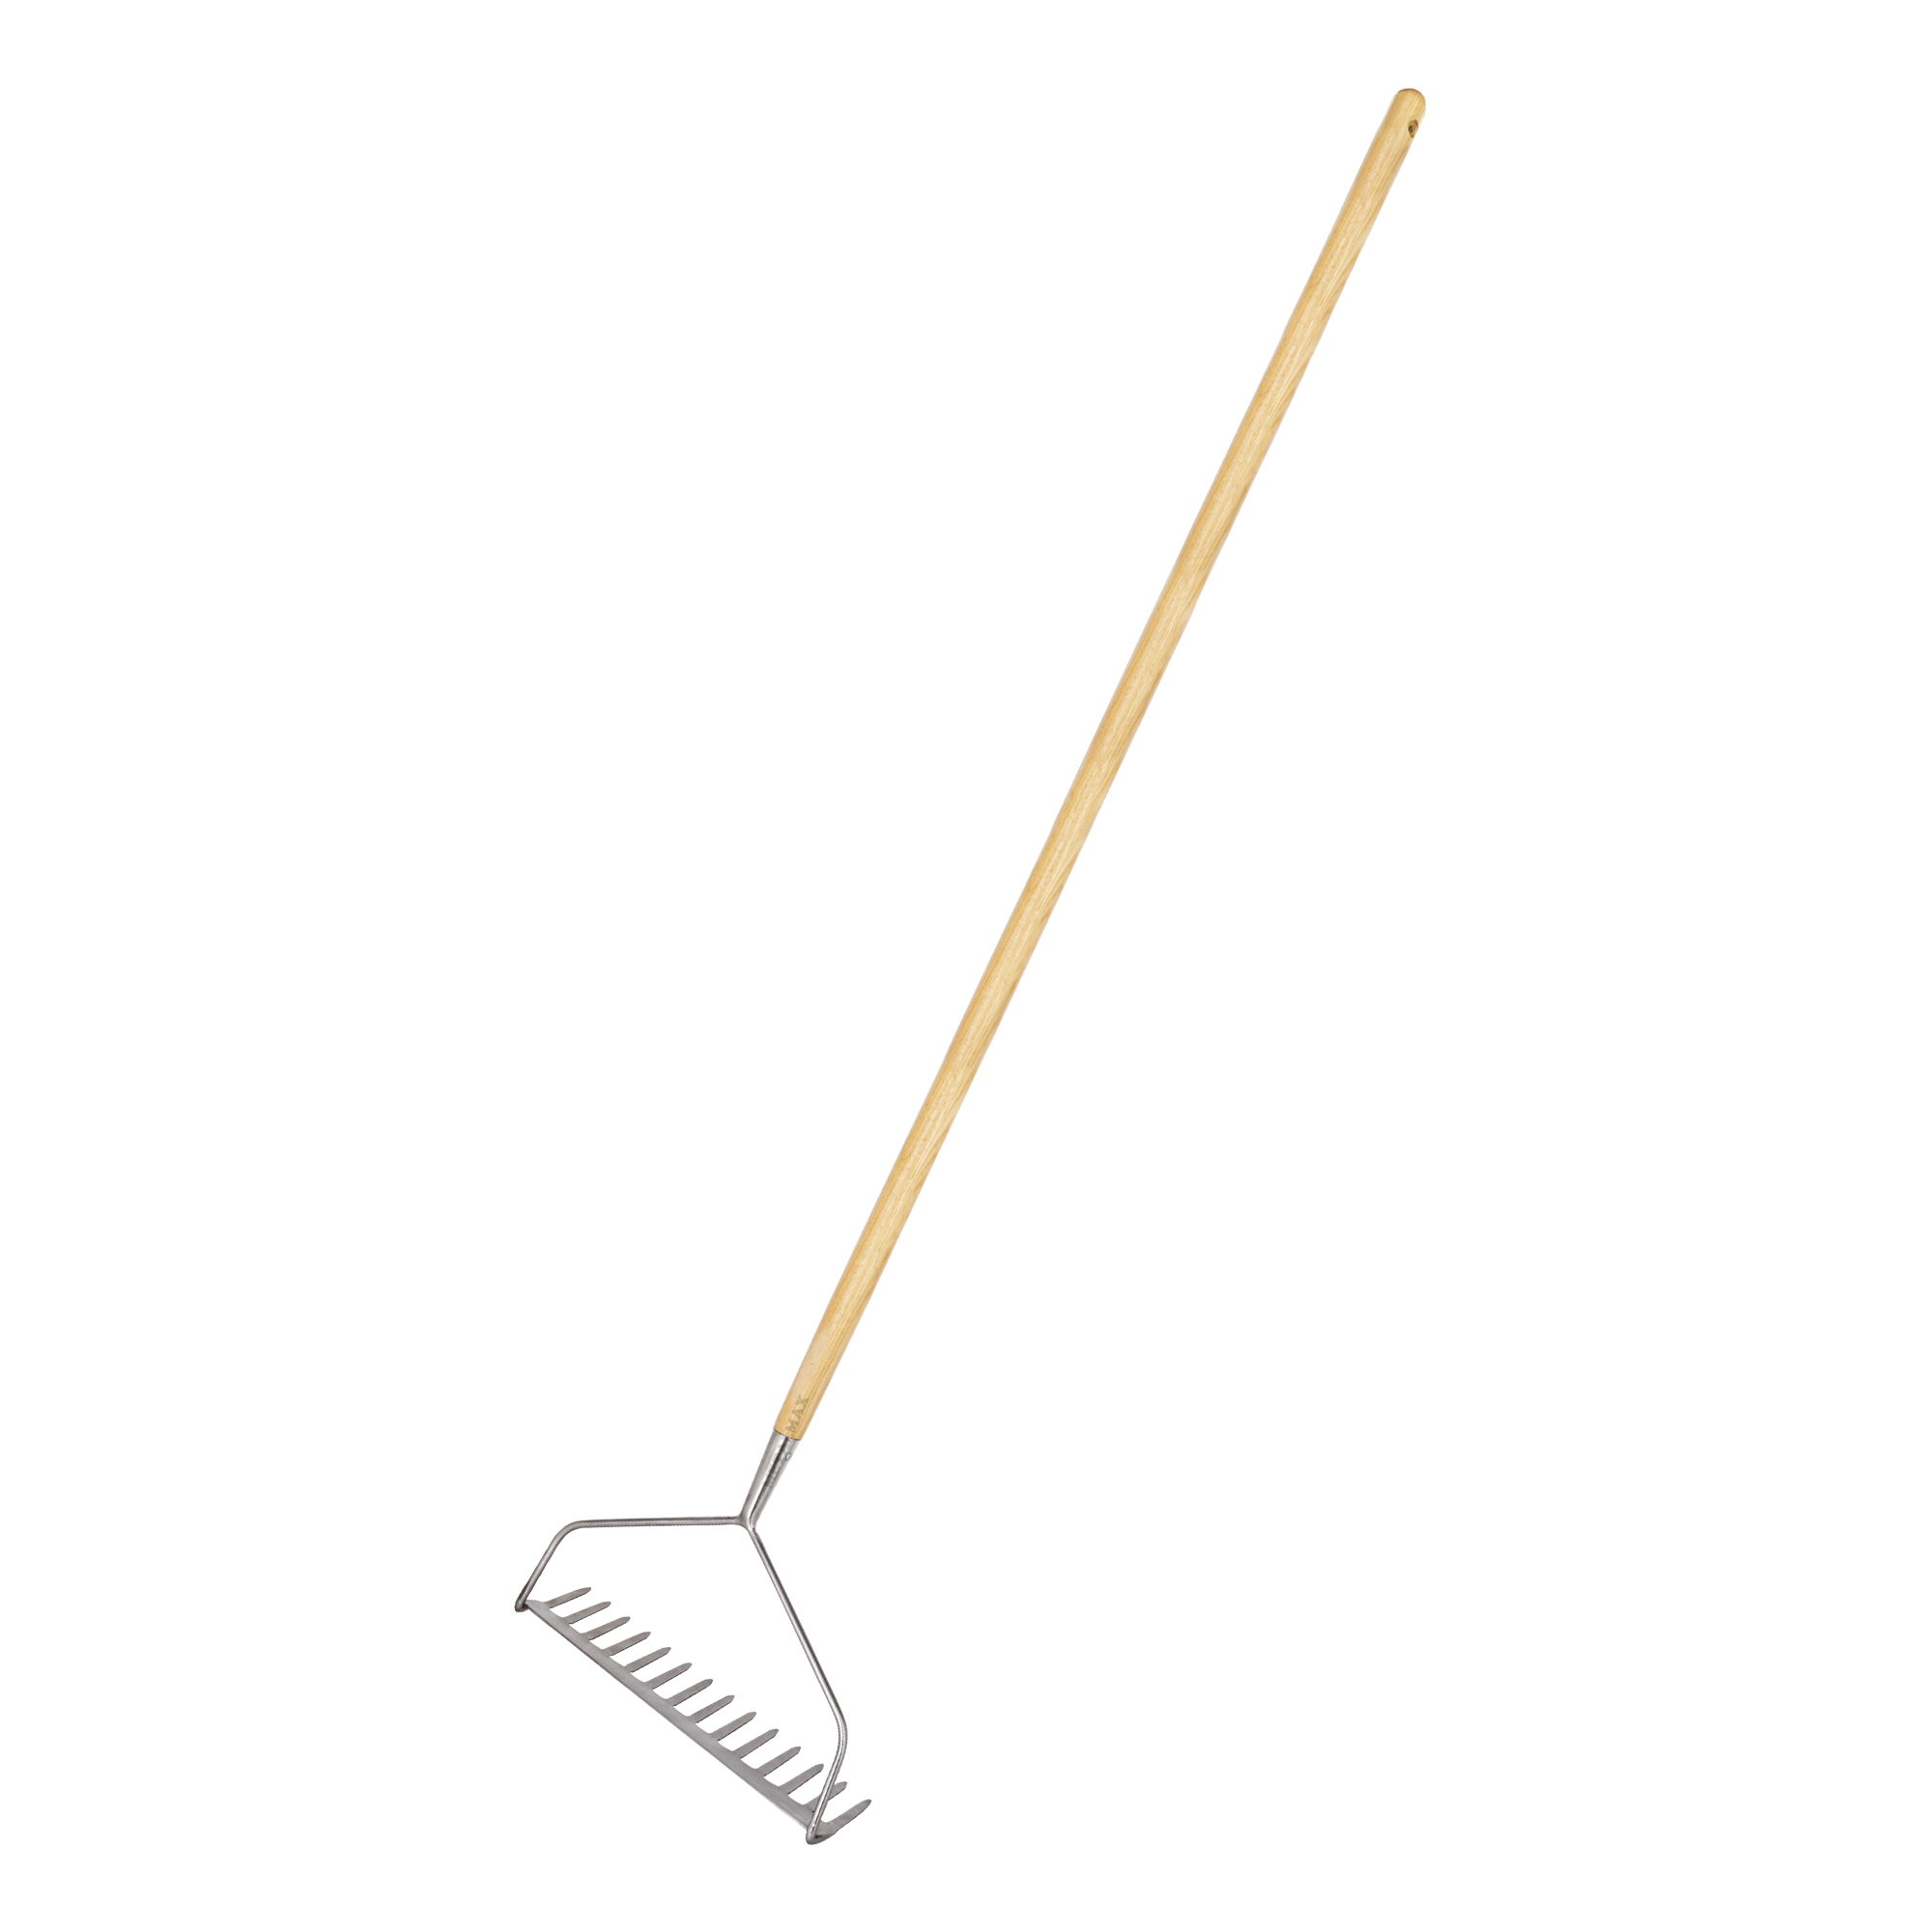 stainless steel long handled soil rake